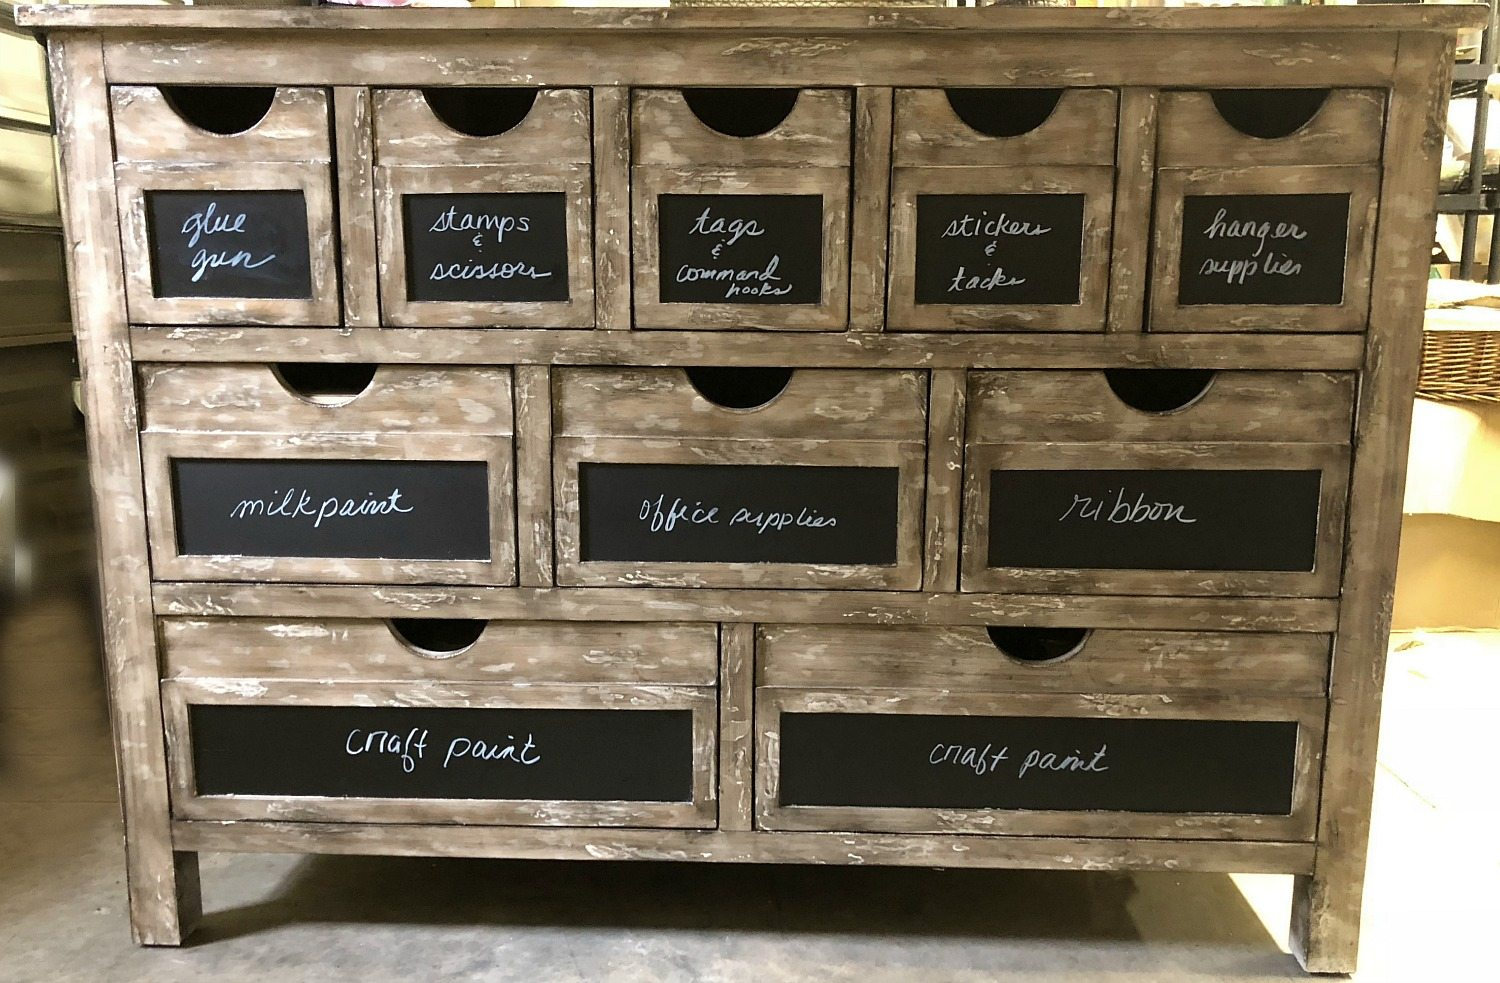 Storage drawers for craft supplies